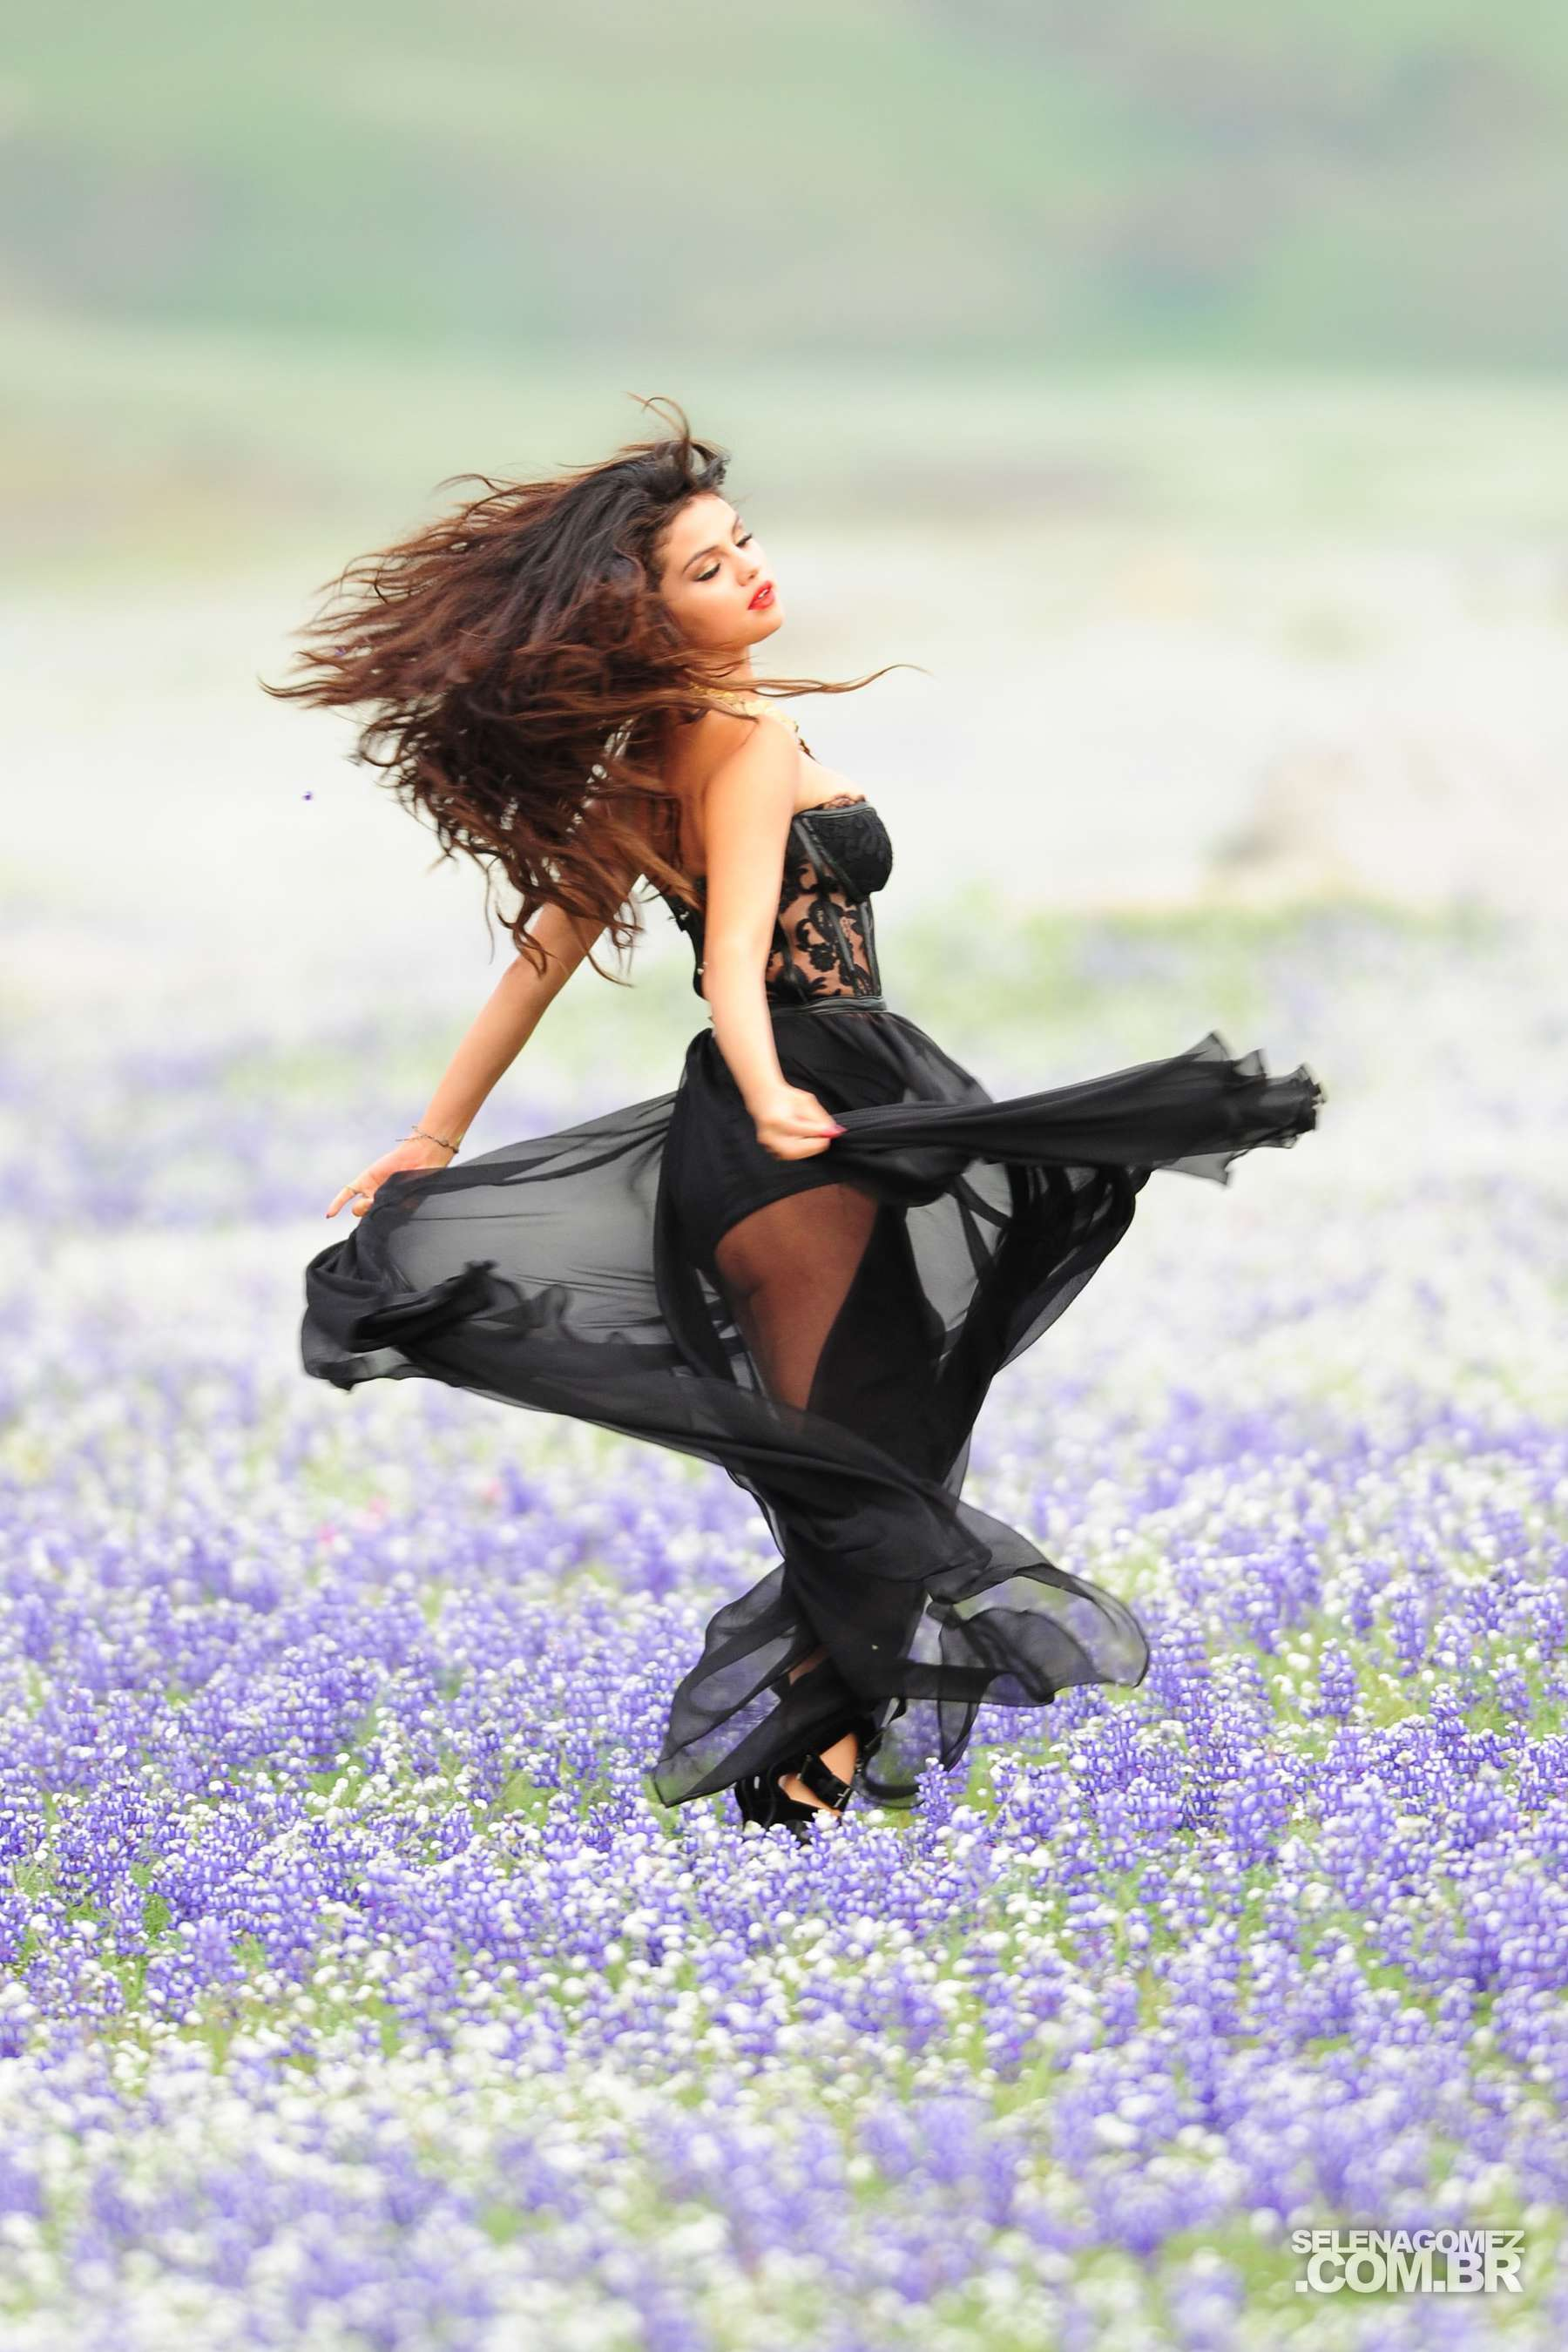 Come And Get It PhotoShot And Backstage -21